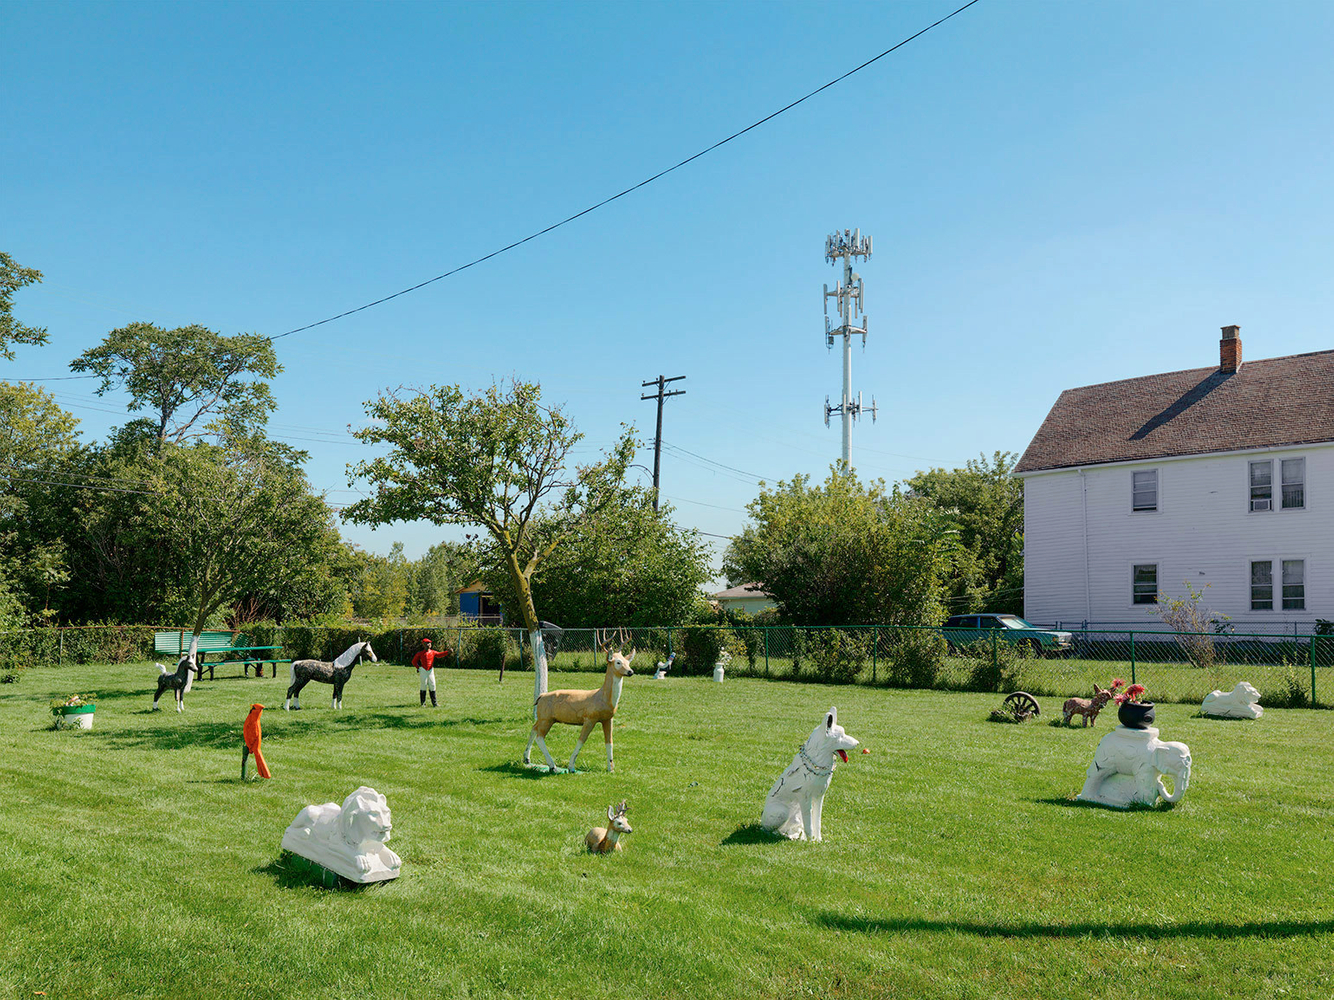 Yard with Lawn Decorations, Eastside, Detroit 2014